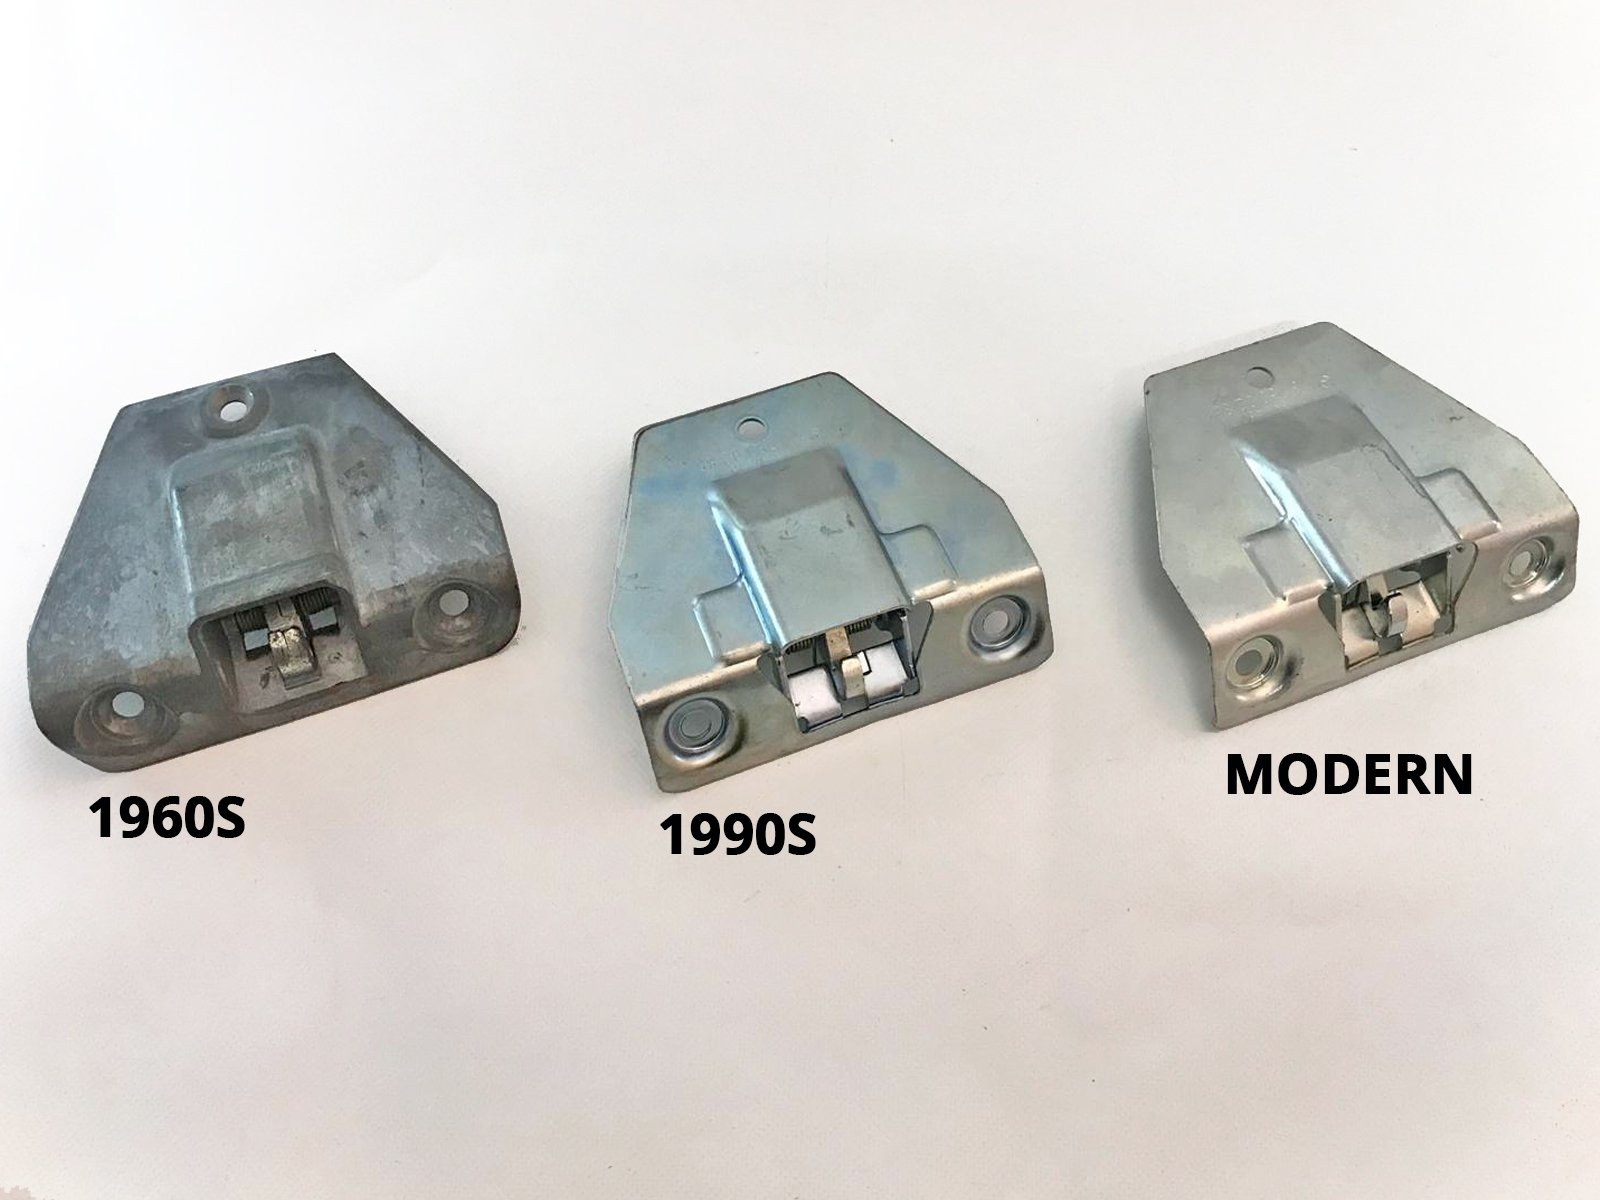 Three different generations of Mercedes parts - boot locks from the 60s, 90s and Millennium.